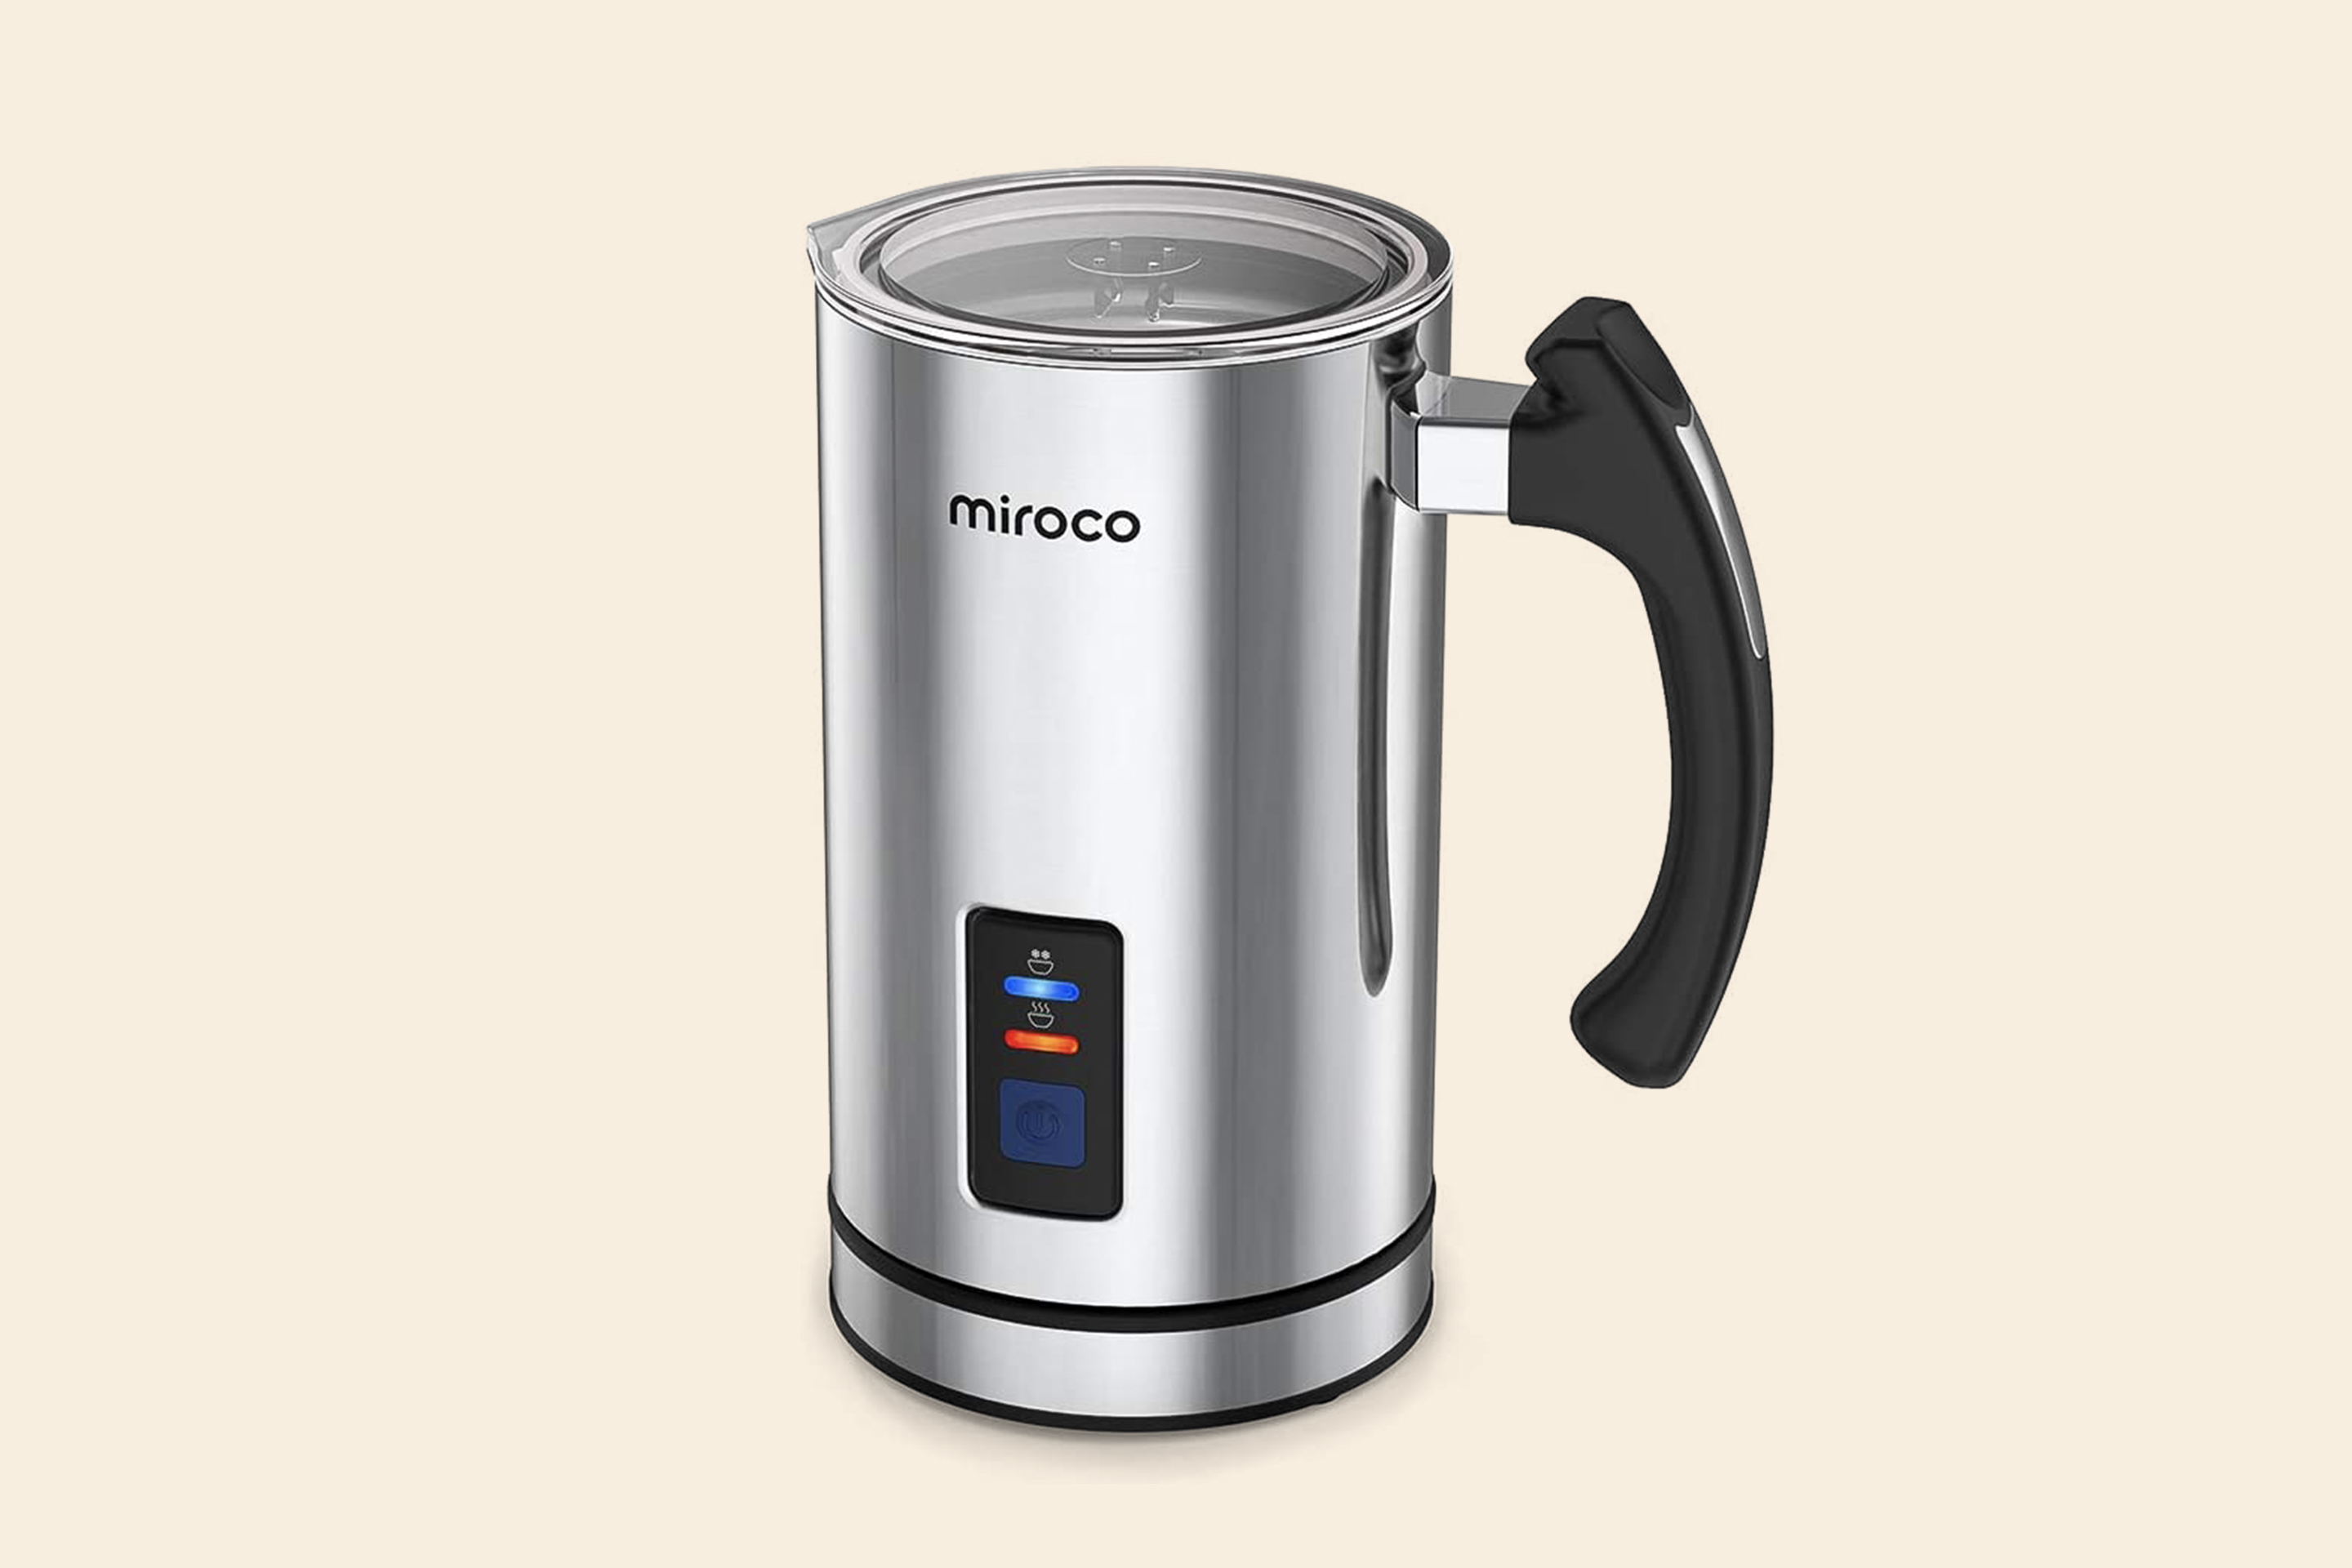 Miroco Stainless Steel Electric Milk Frother